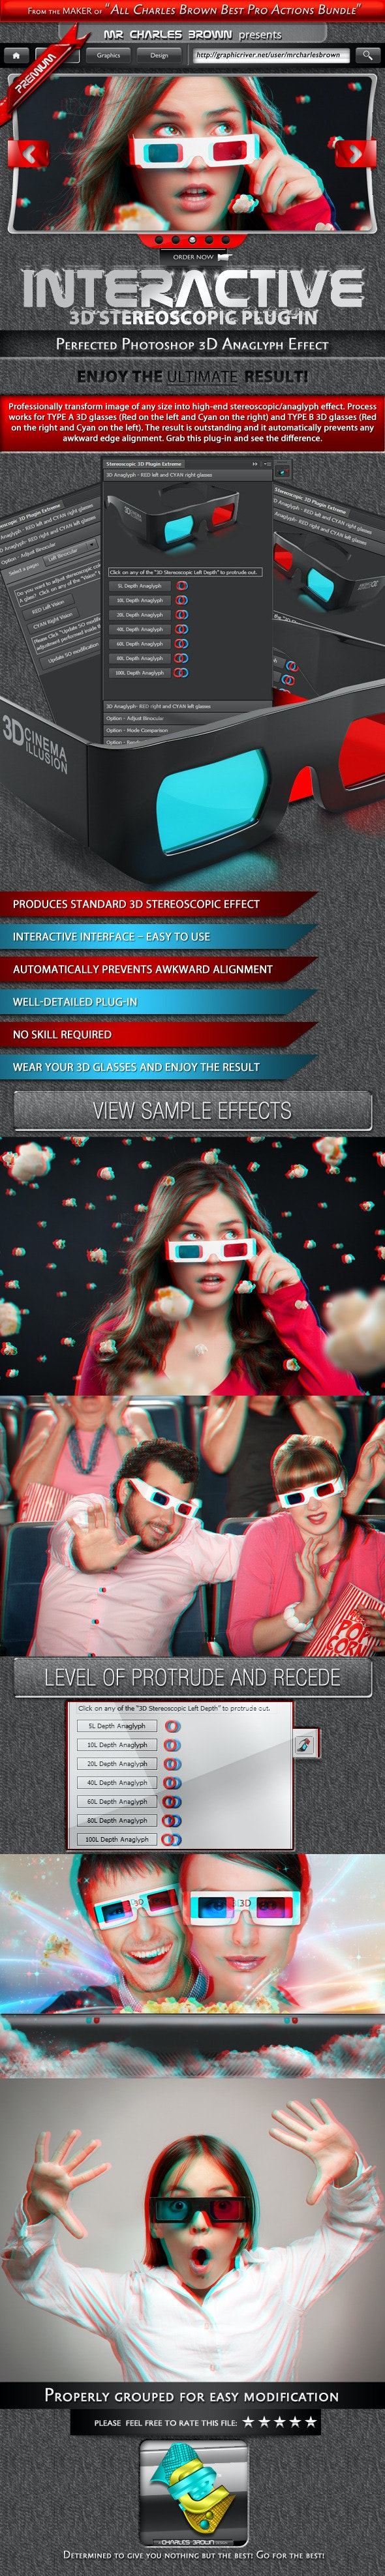 Interactive 3D Stereoscopic Effect - Photo Effects Actions